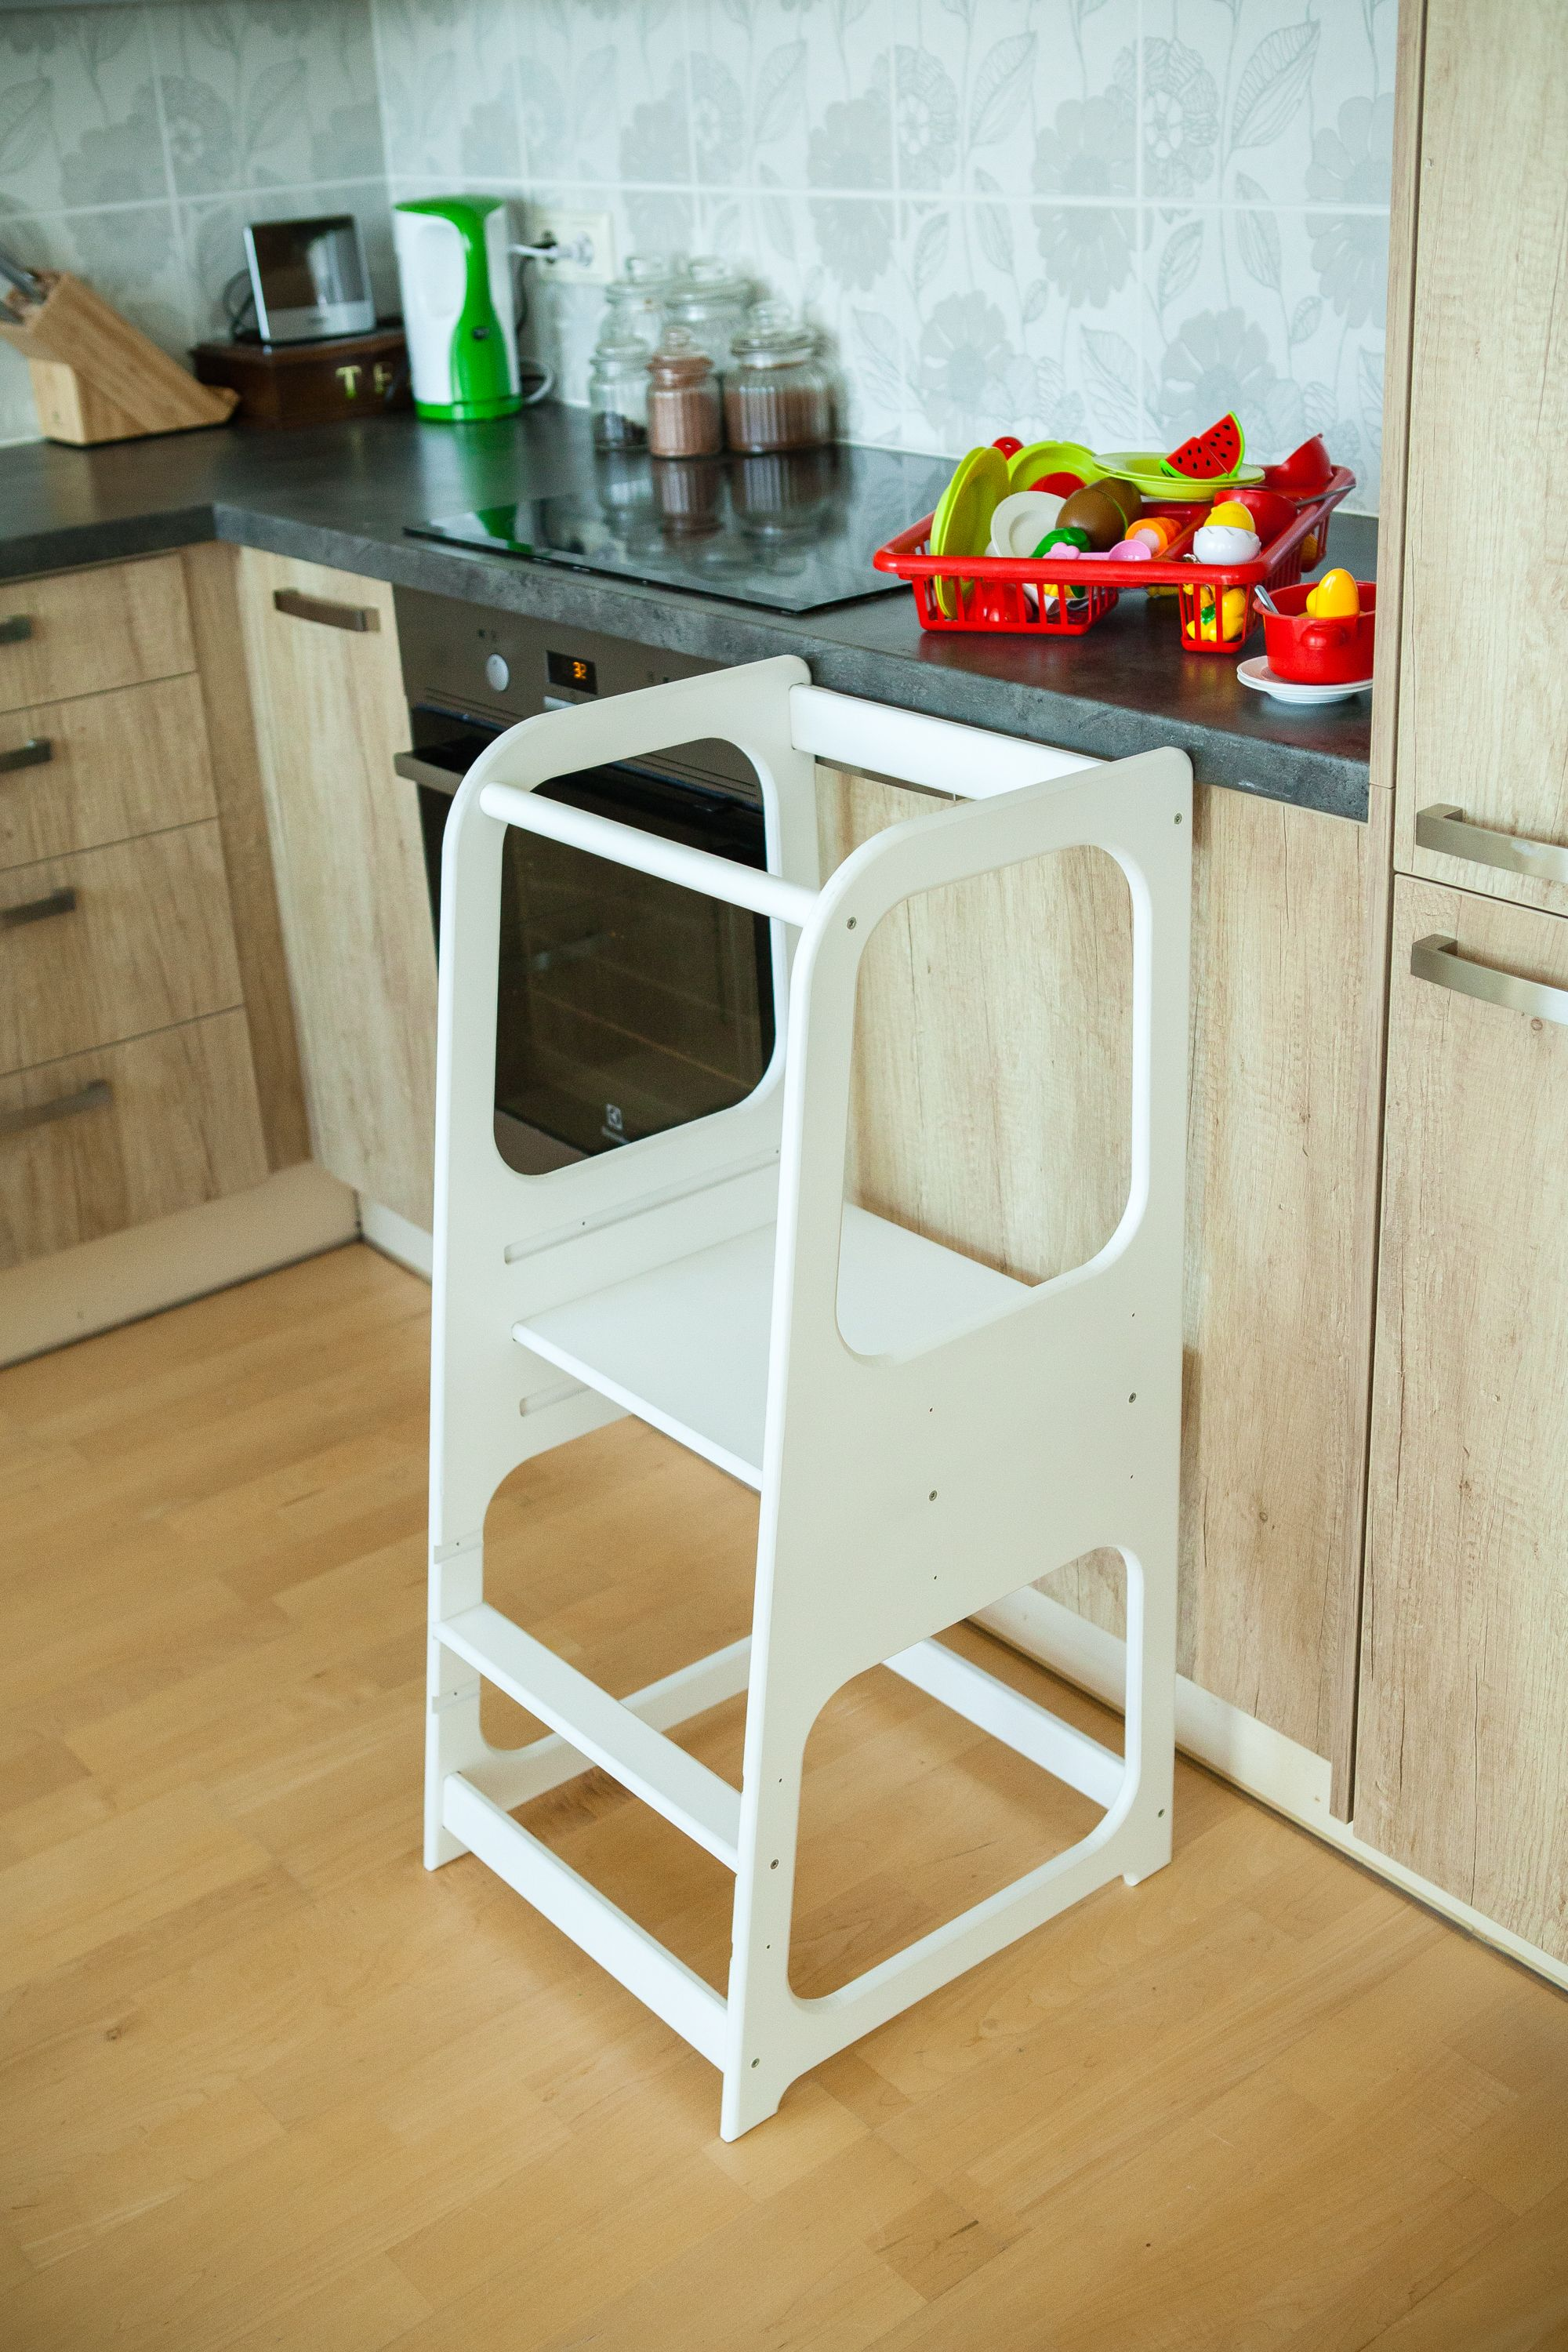 Kitchen Helper Kitchen stool Safety stool Toddler step stool ...